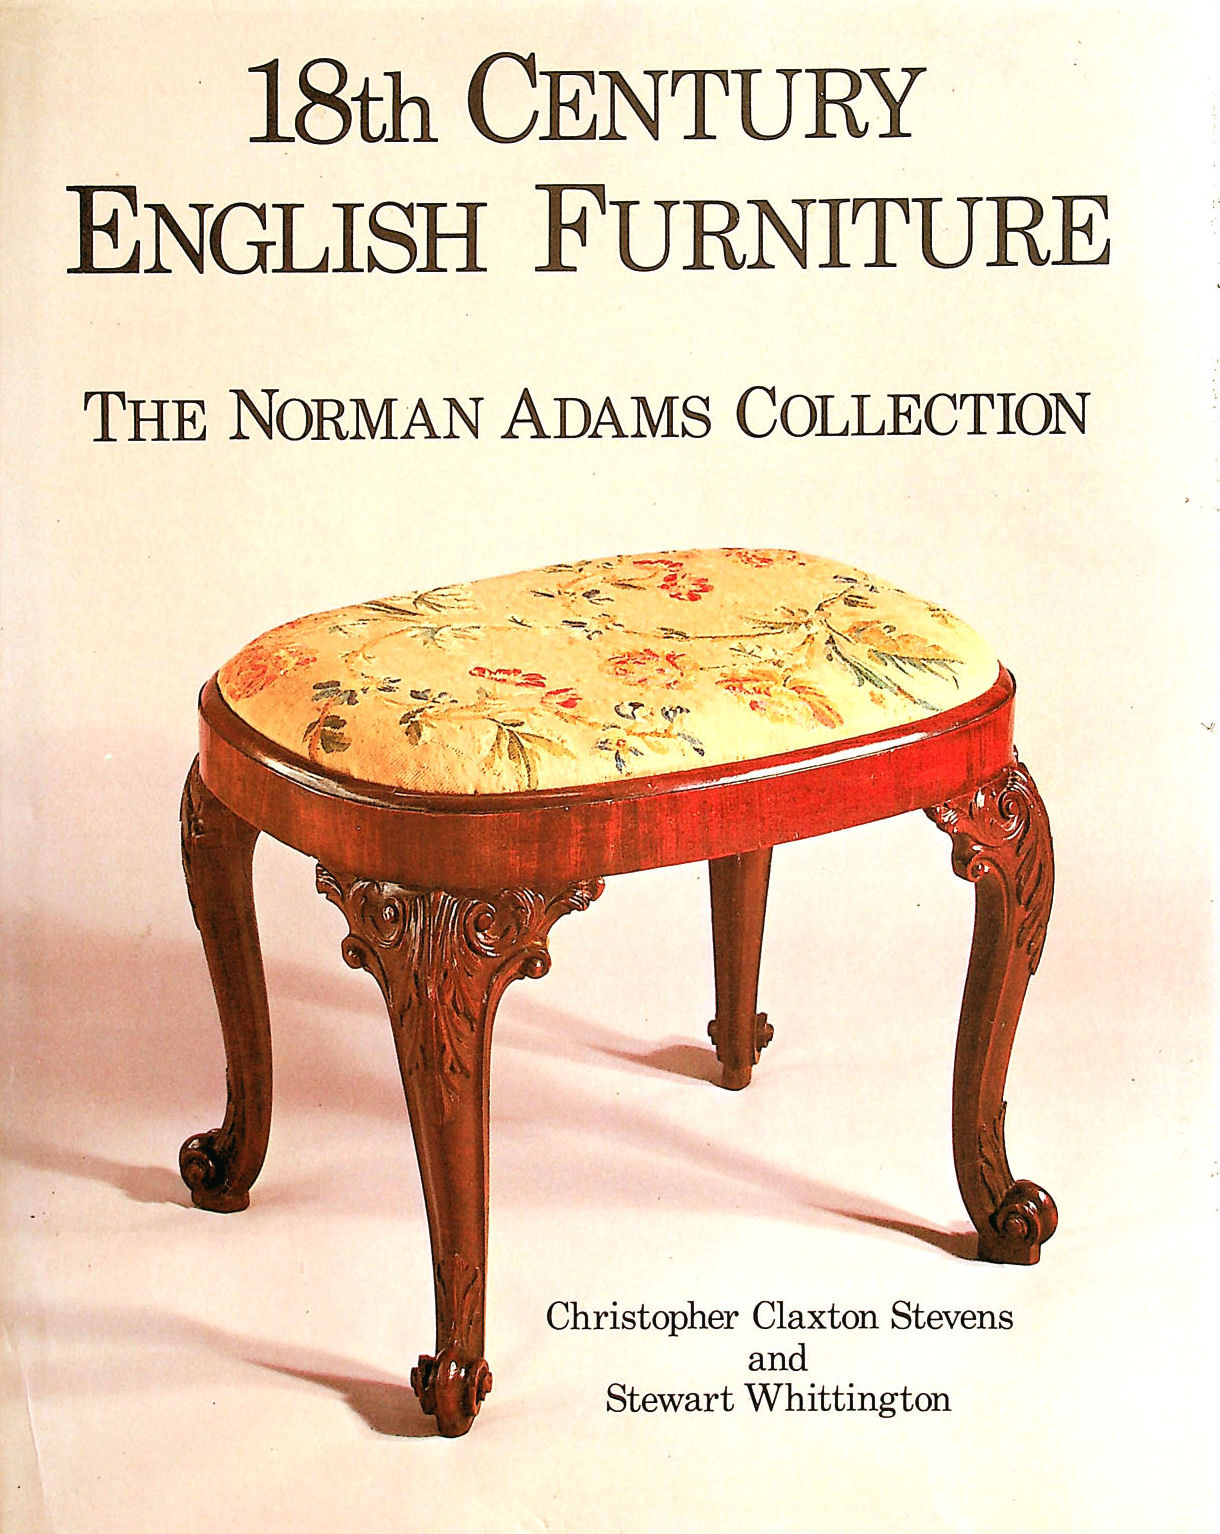 Image for Eighteenth Century English Furniture: Norman Adams Collection